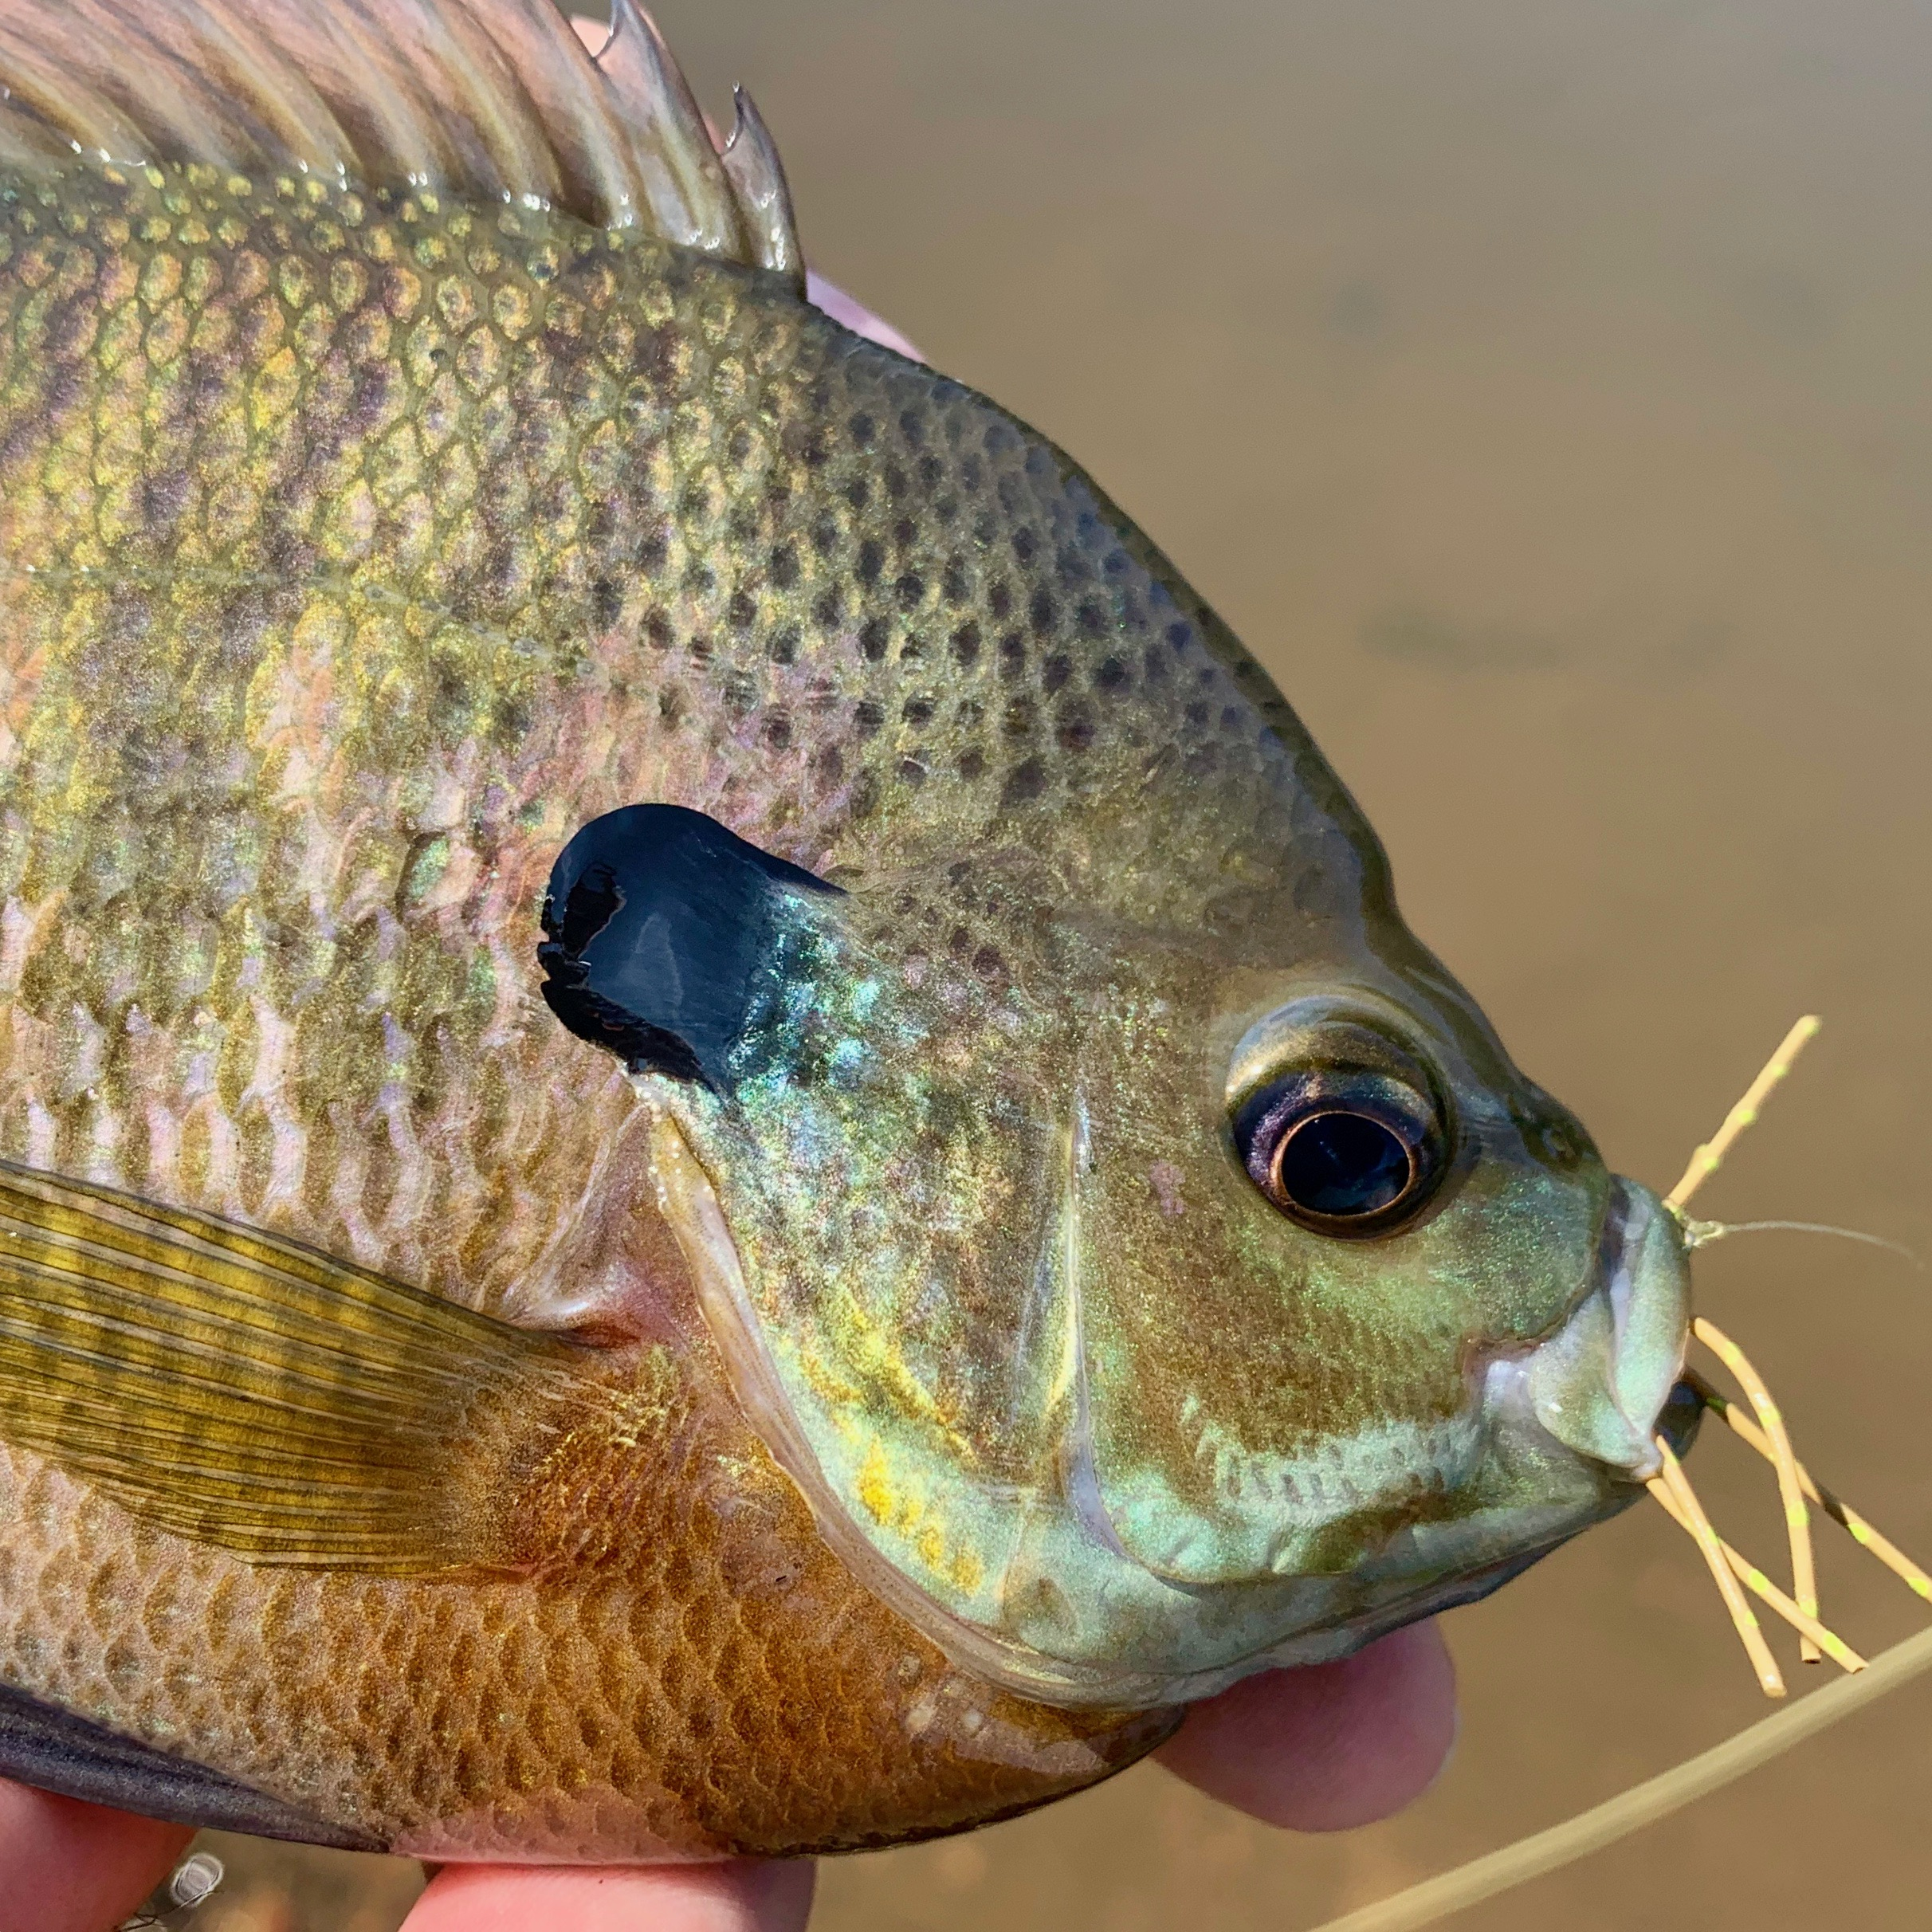 This chunky bluegill had no problem inhaling a large Bream Killer